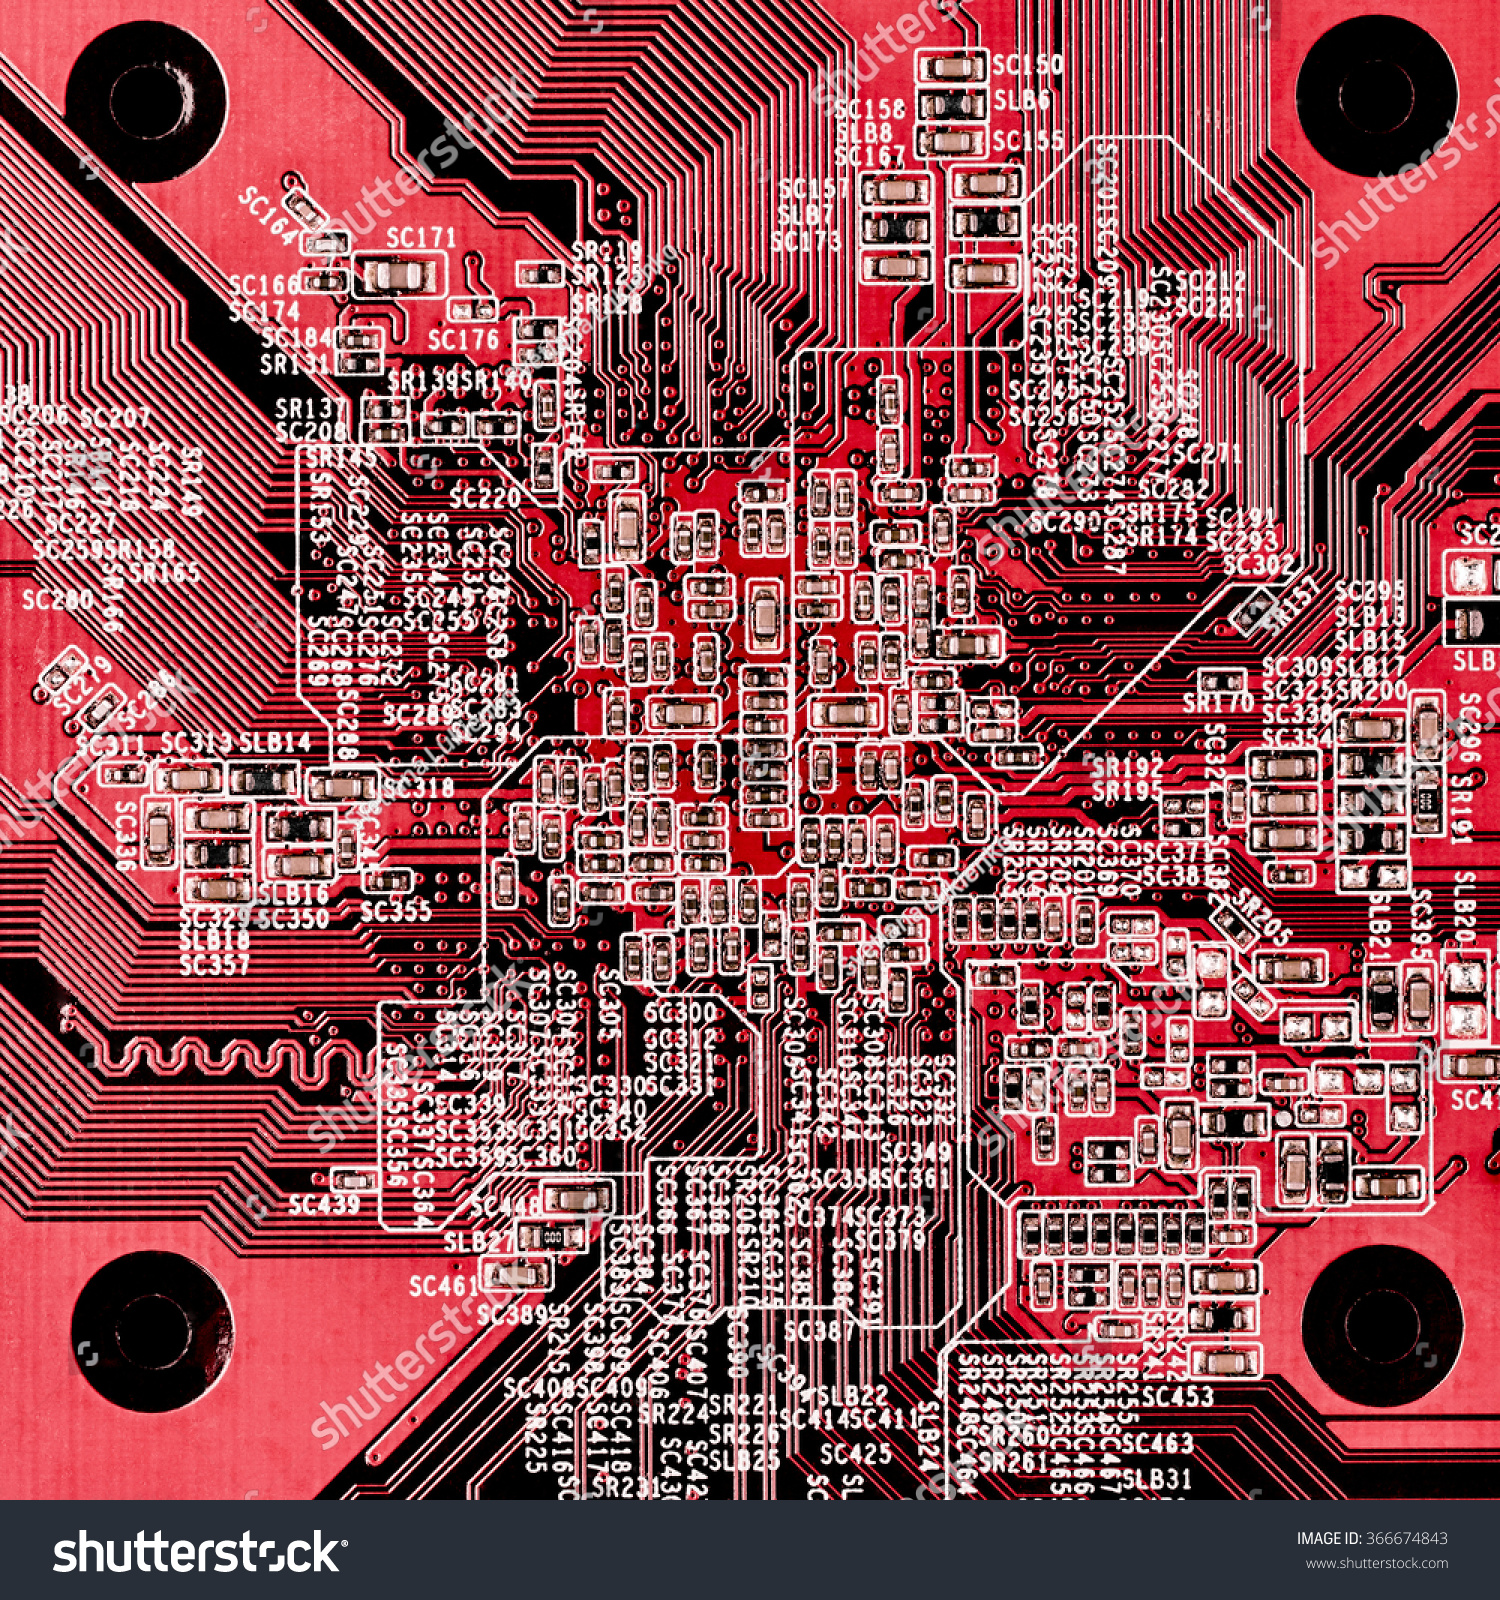 Closeup Red Circuit Board Top View Stock Photo Edit Now 366674843 Old Electronic Royalty Free Image Close Up Of Point